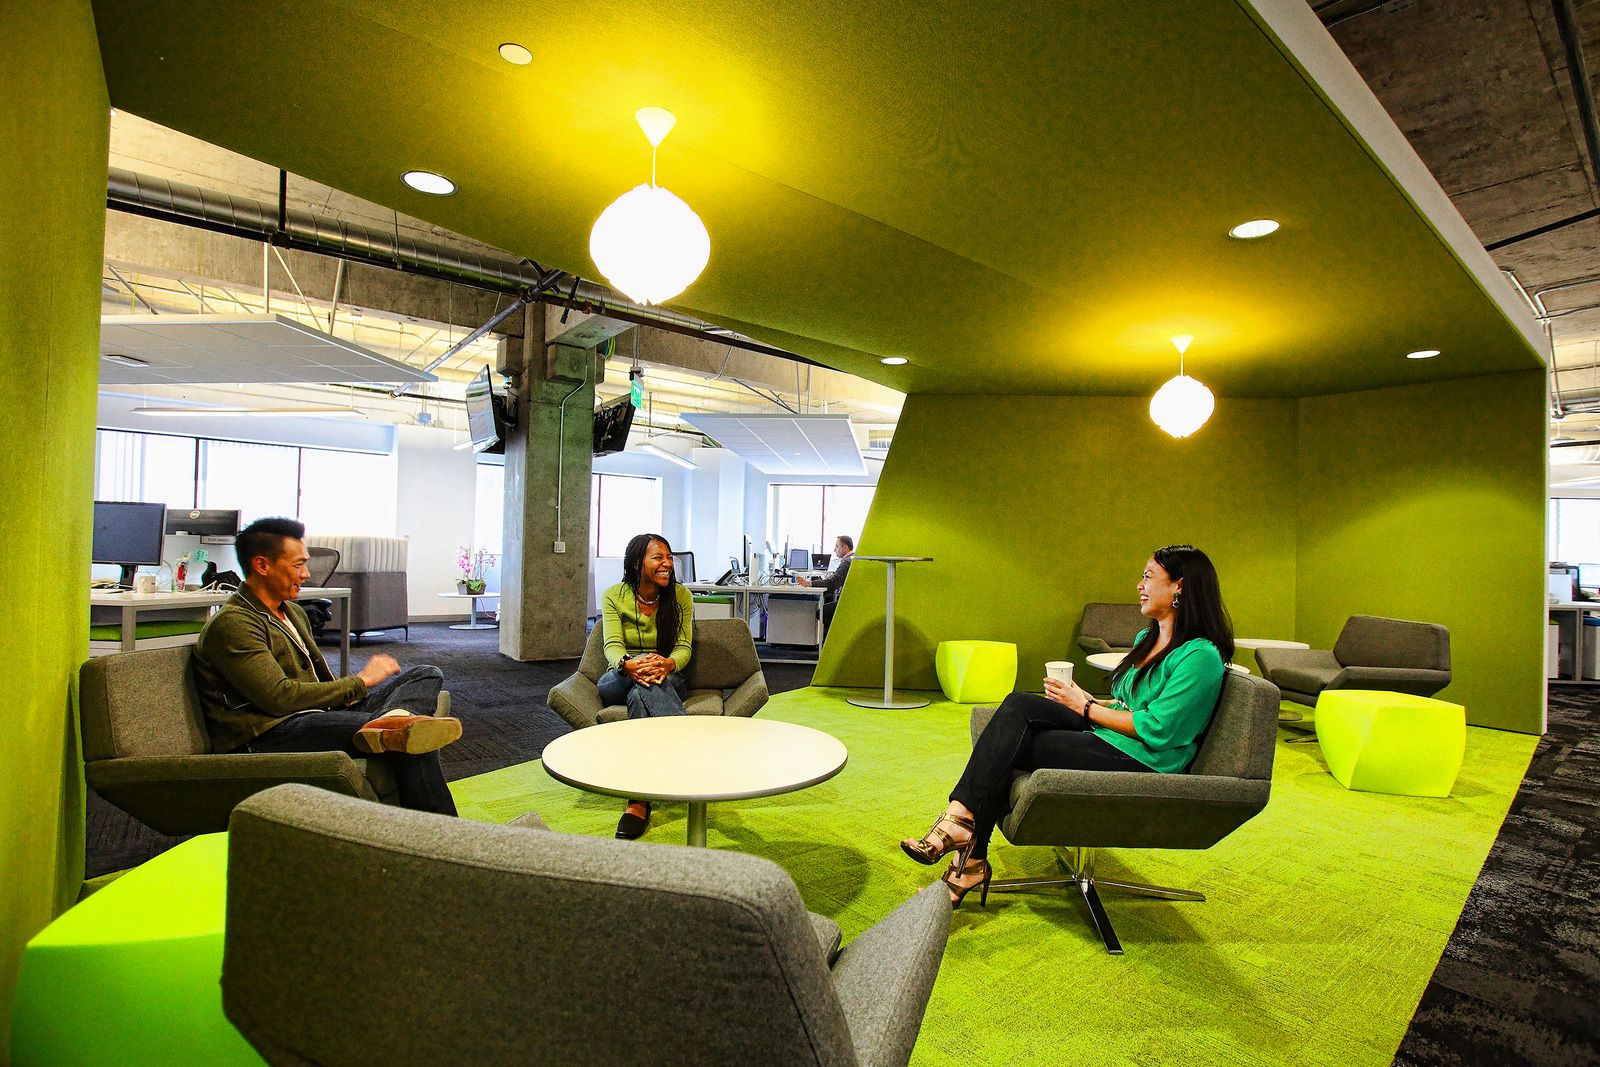 Exceptionnel App Dynamicu0027s Office Green Breakout Area Meeting